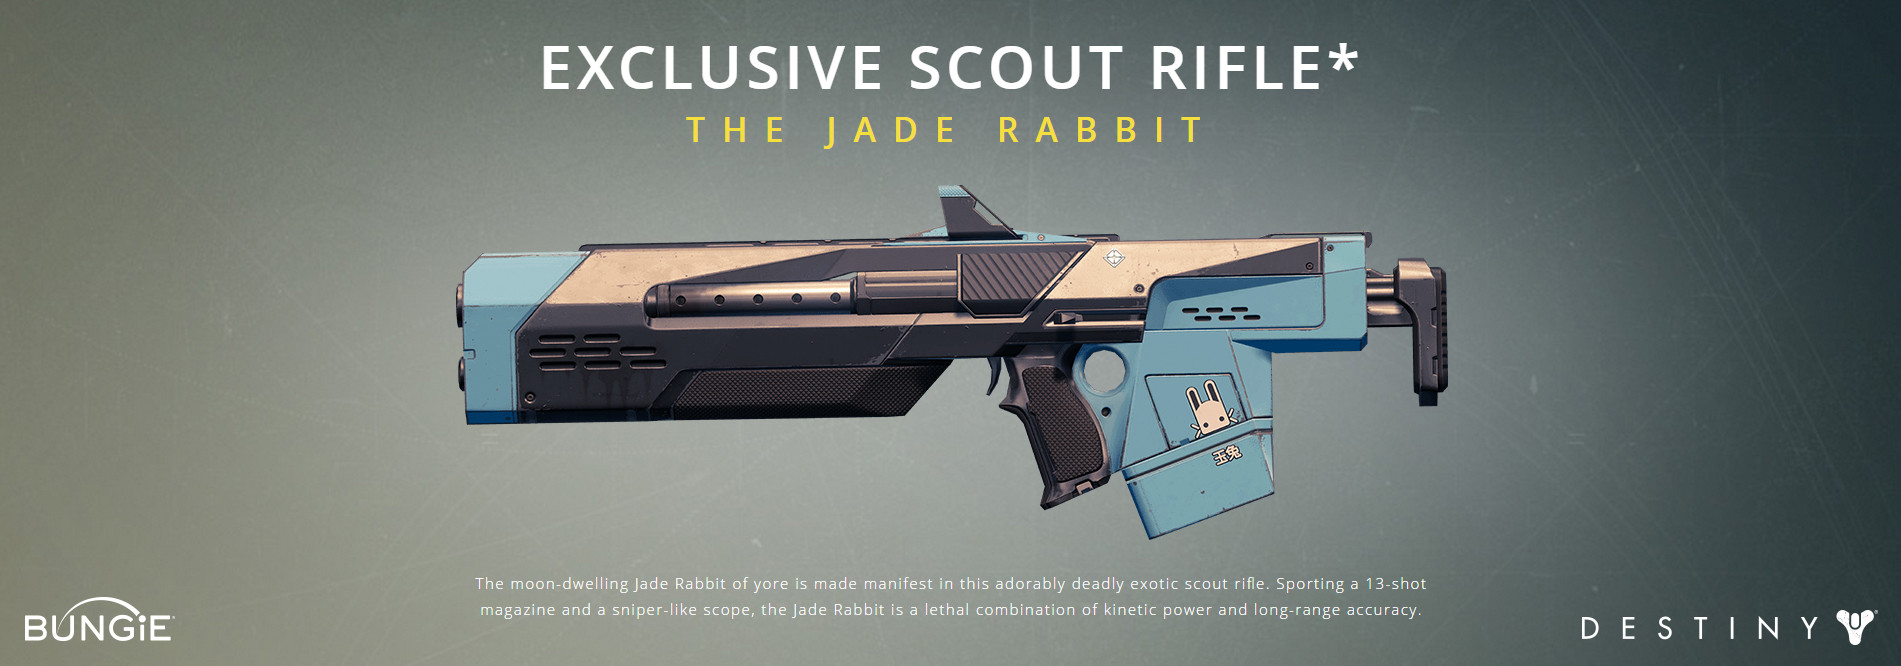 Mark van haitsma jade rabbit exclusive content